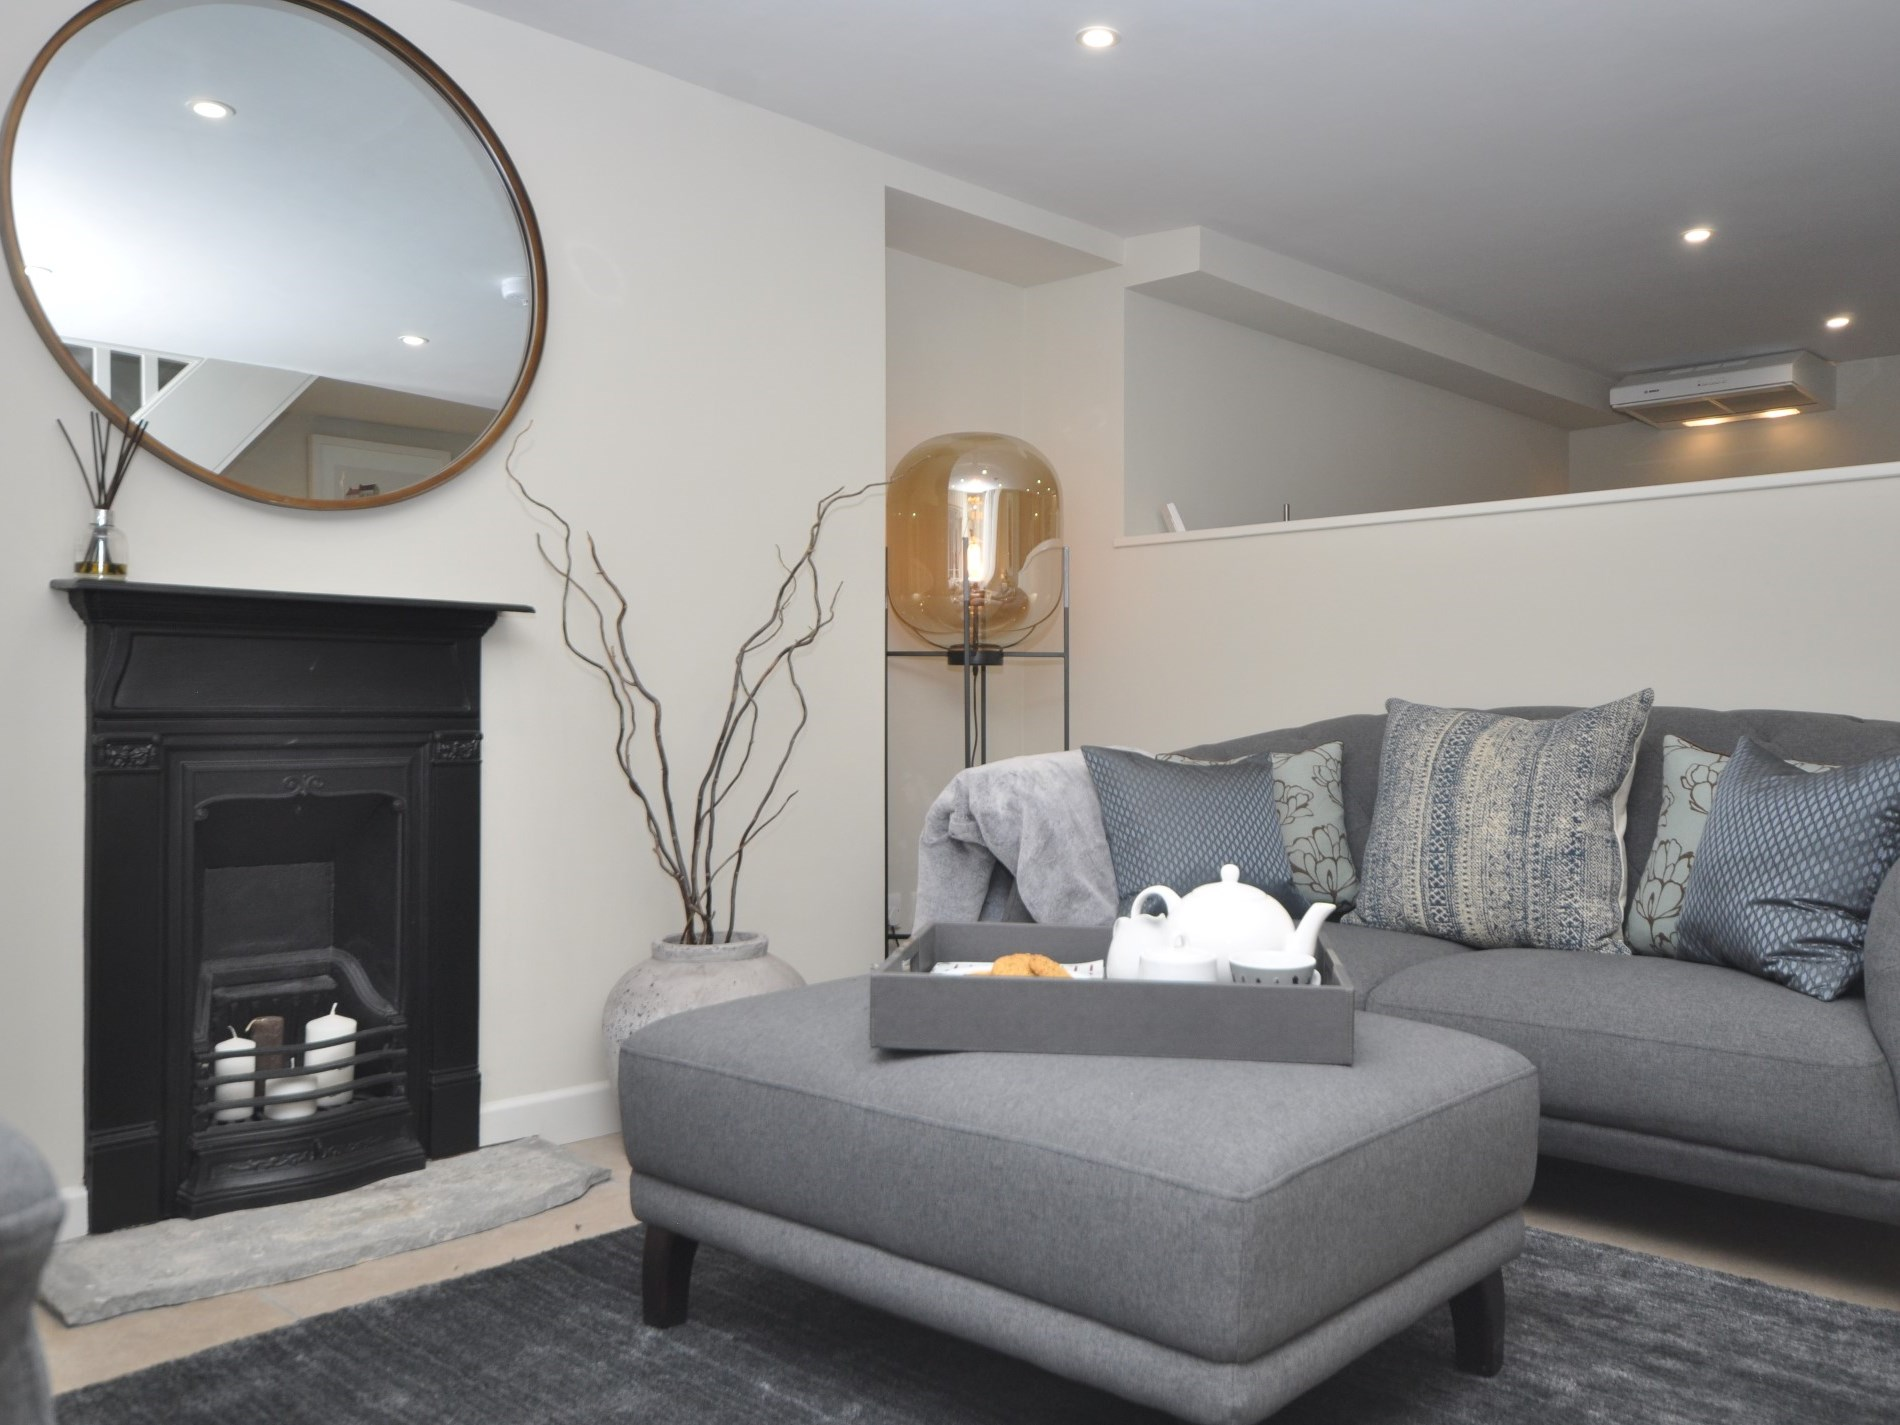 Grade II listed with feature fire place